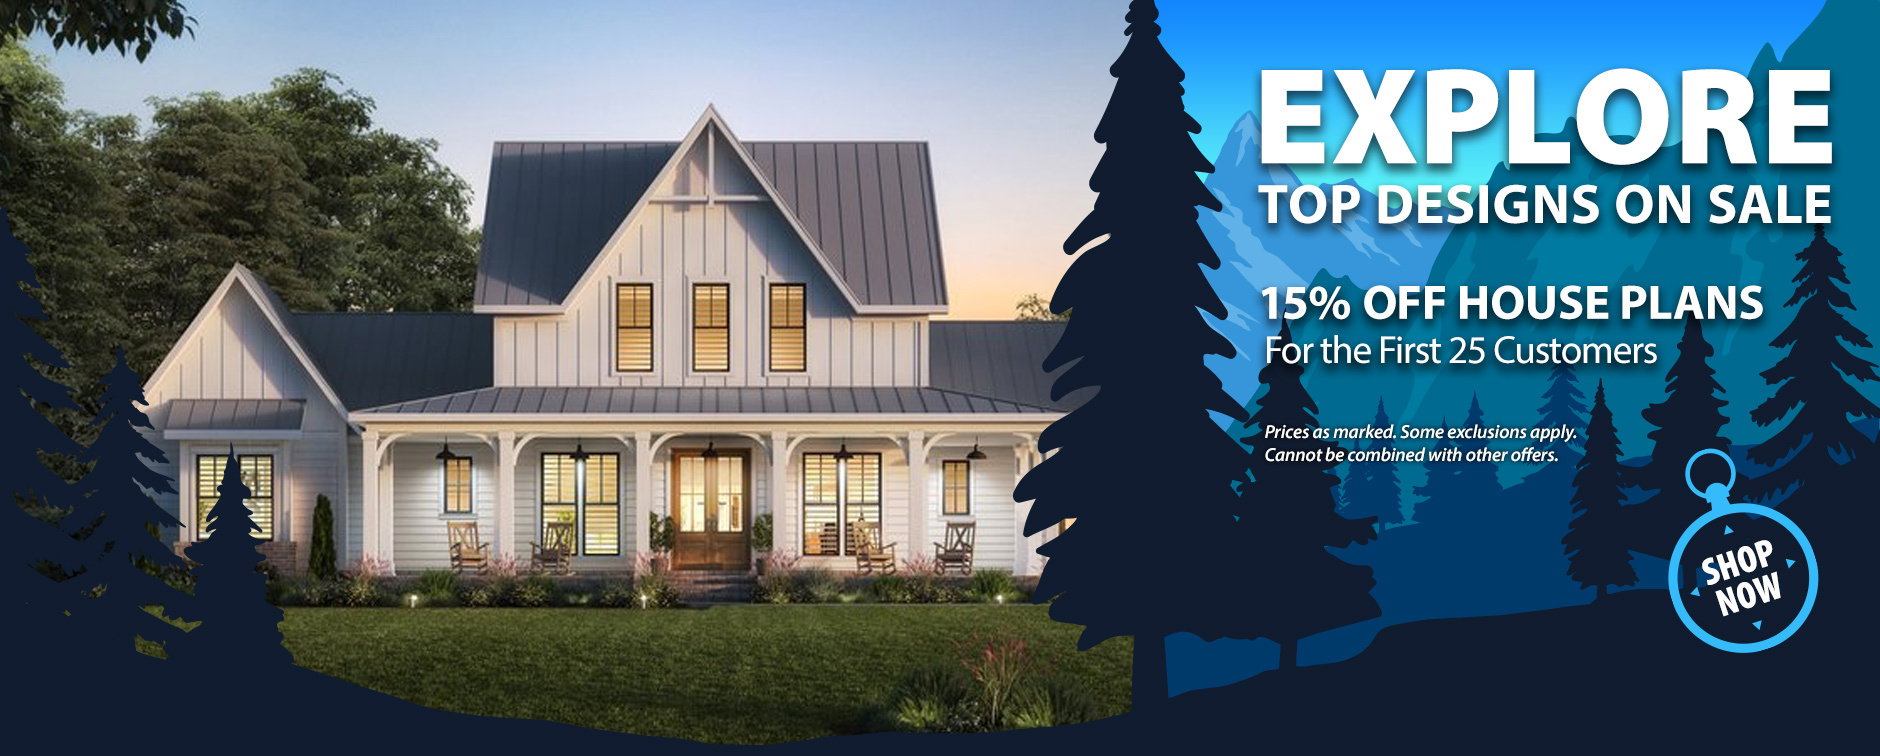 House Plan Sale 15% Off Layouts for the First 25 Customers